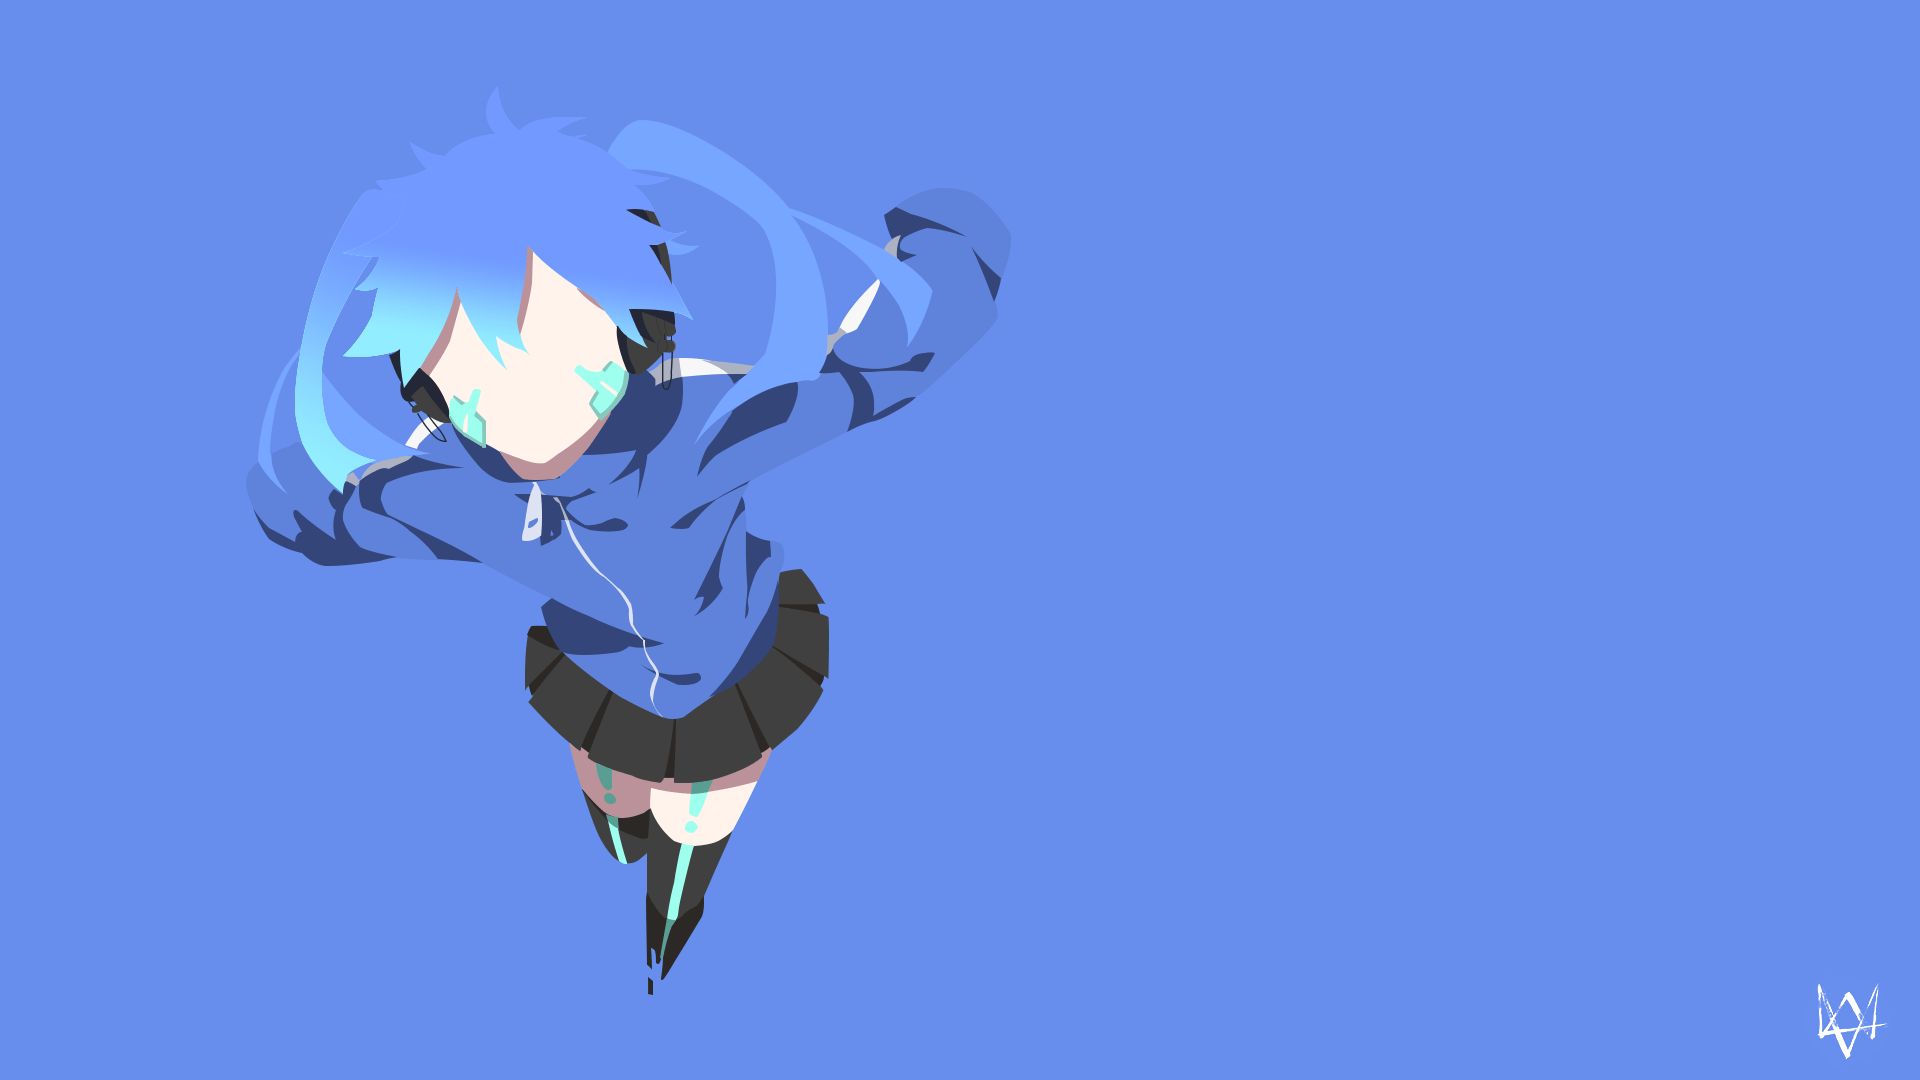 Minimalistic Anime Phone Wallpapers Wallpaper Cave